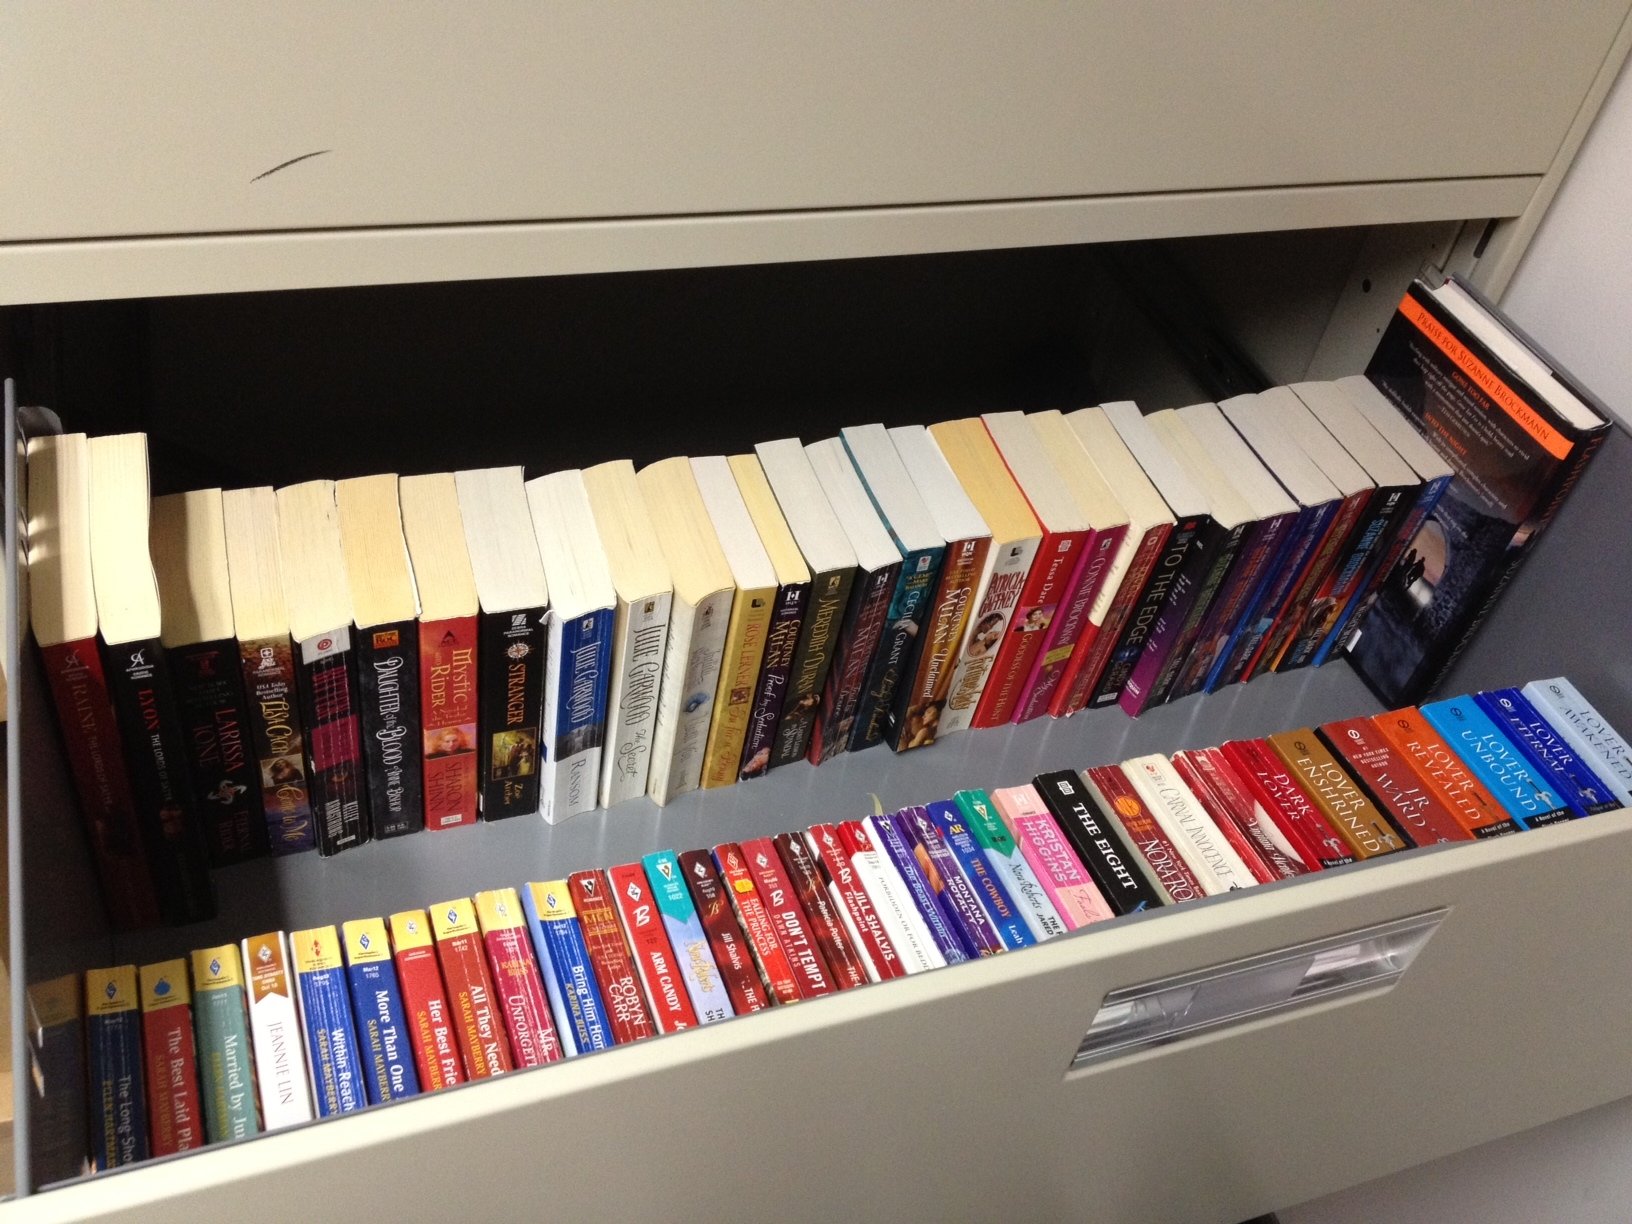 A long desk drawer FILLED with romance novels lined up in order.